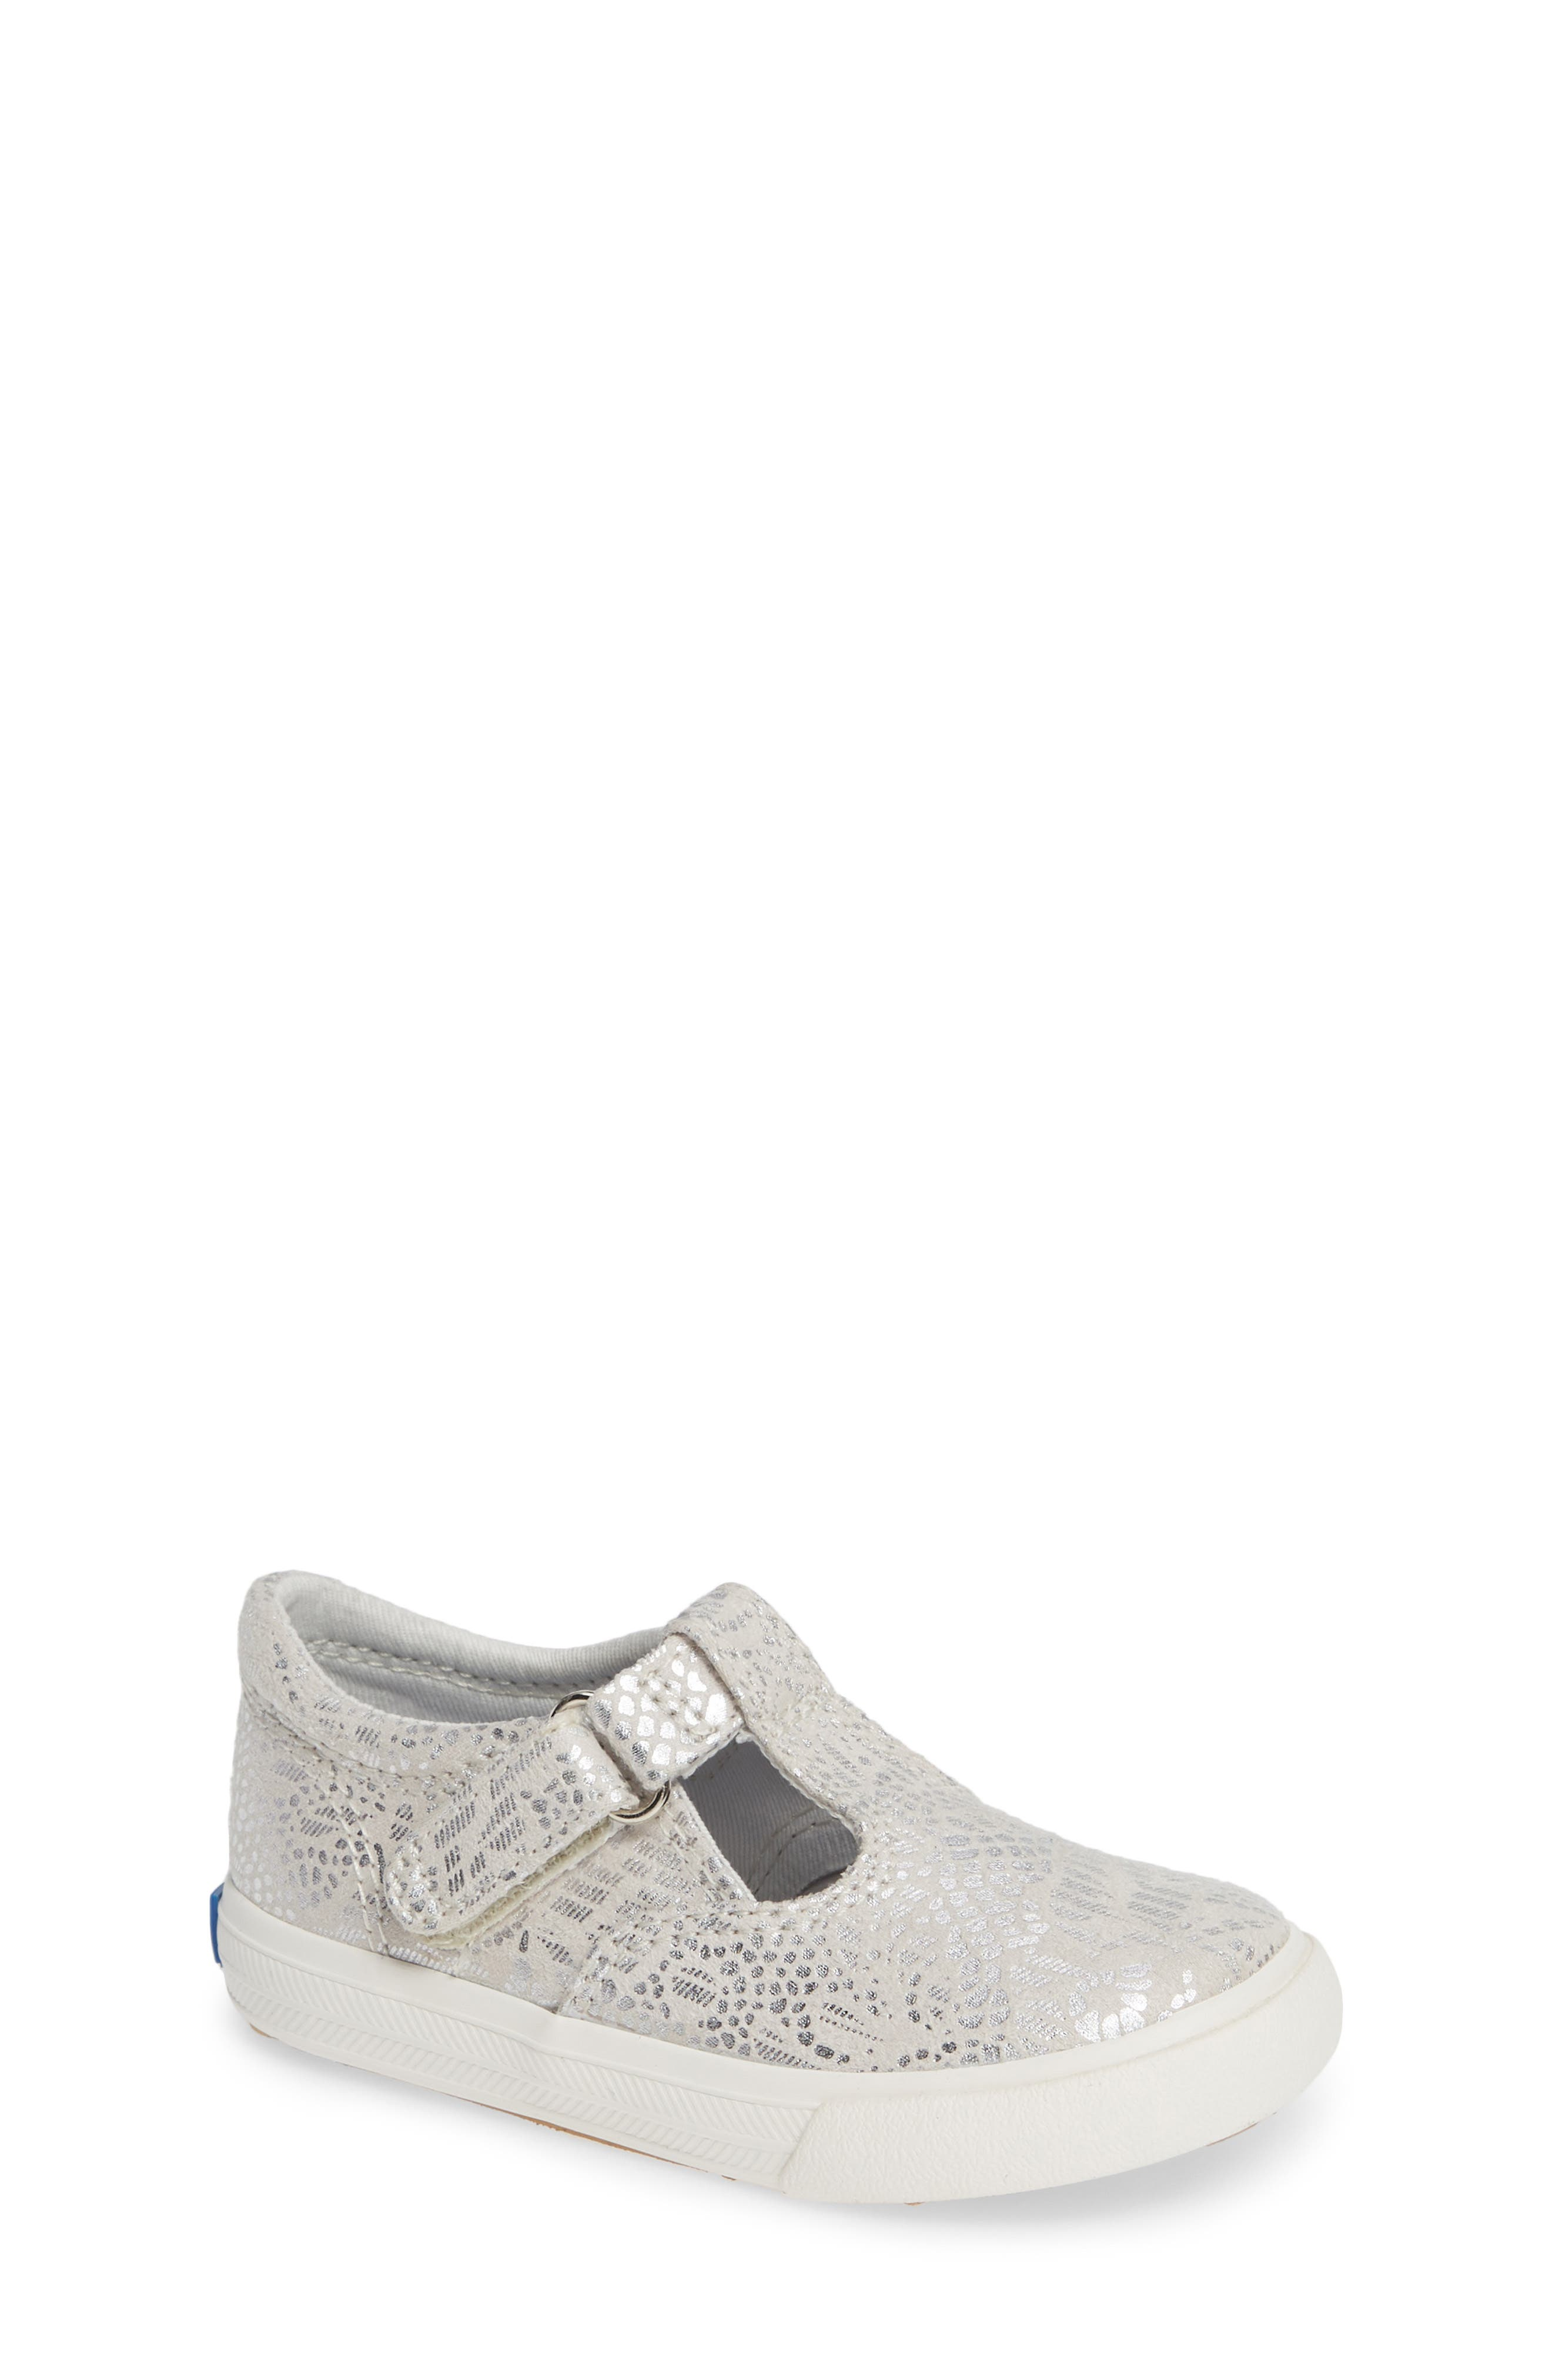 Daphne T-Strap Sneaker,                             Main thumbnail 1, color,                             Silver/ Silver